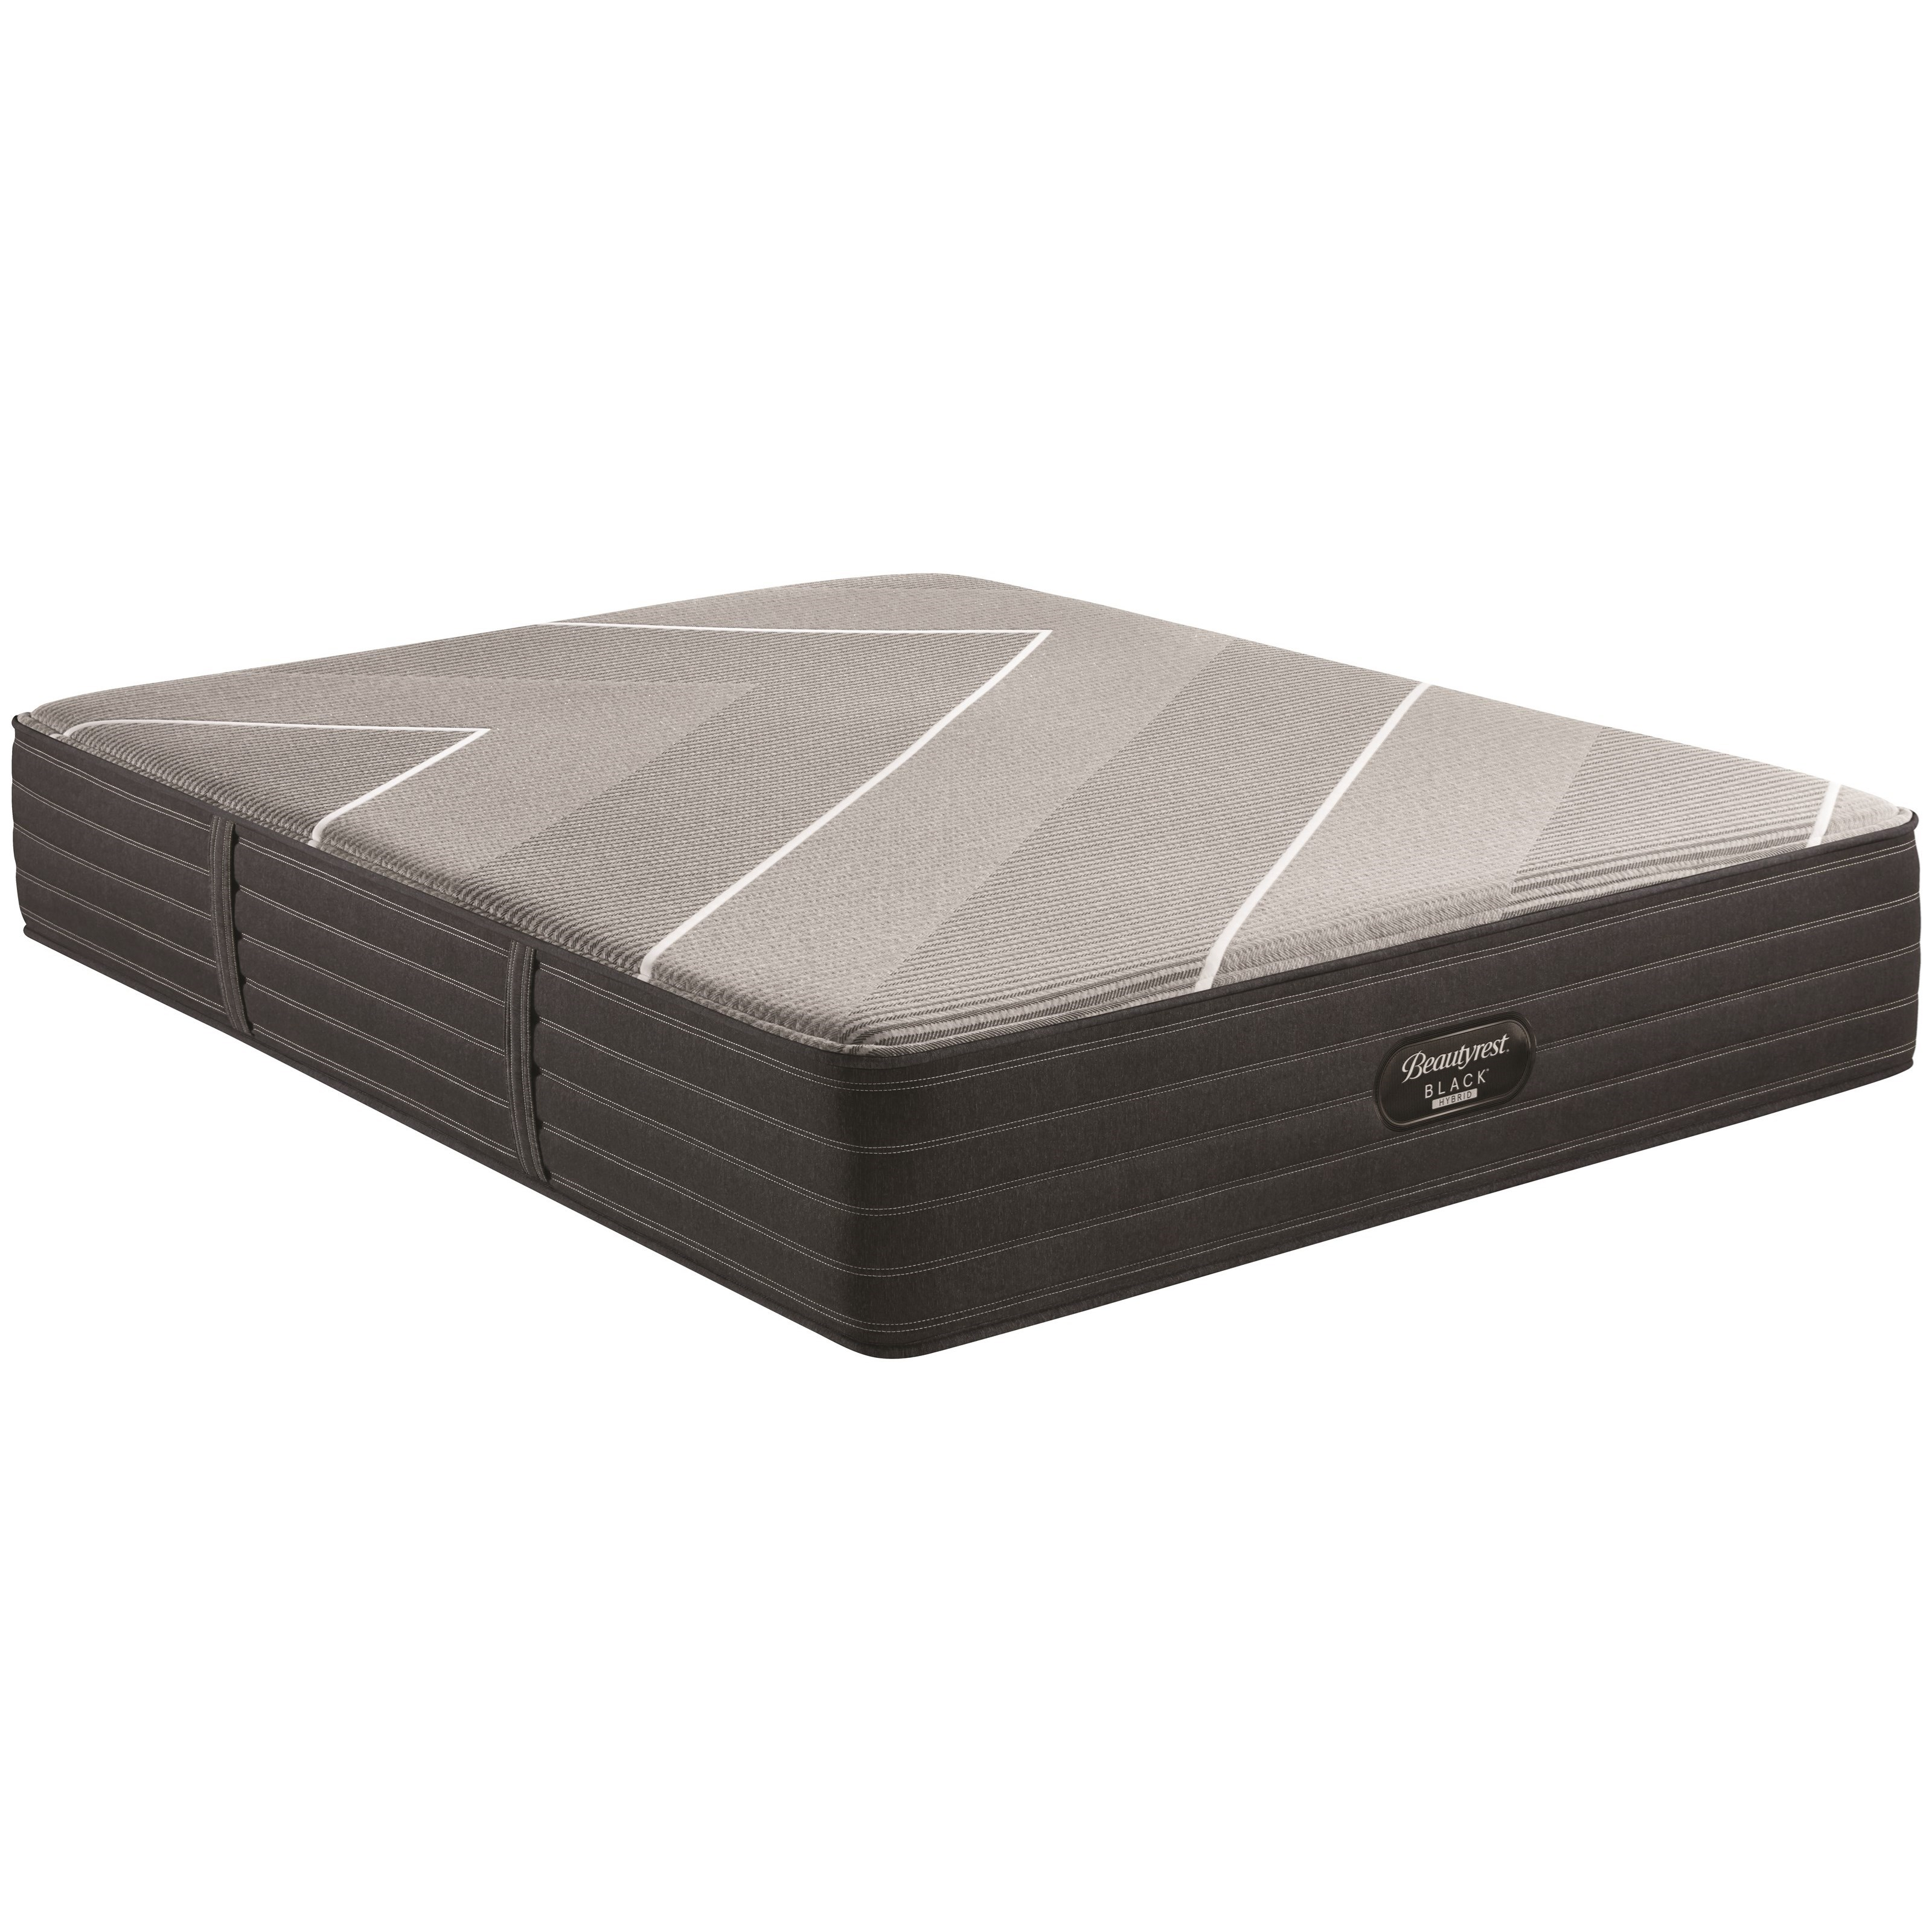 "X-Class Hybrid Medium Twin XL 13 1/2"" Medium Feel Hybrid Mattress by Beautyrest at Walker's Mattress"